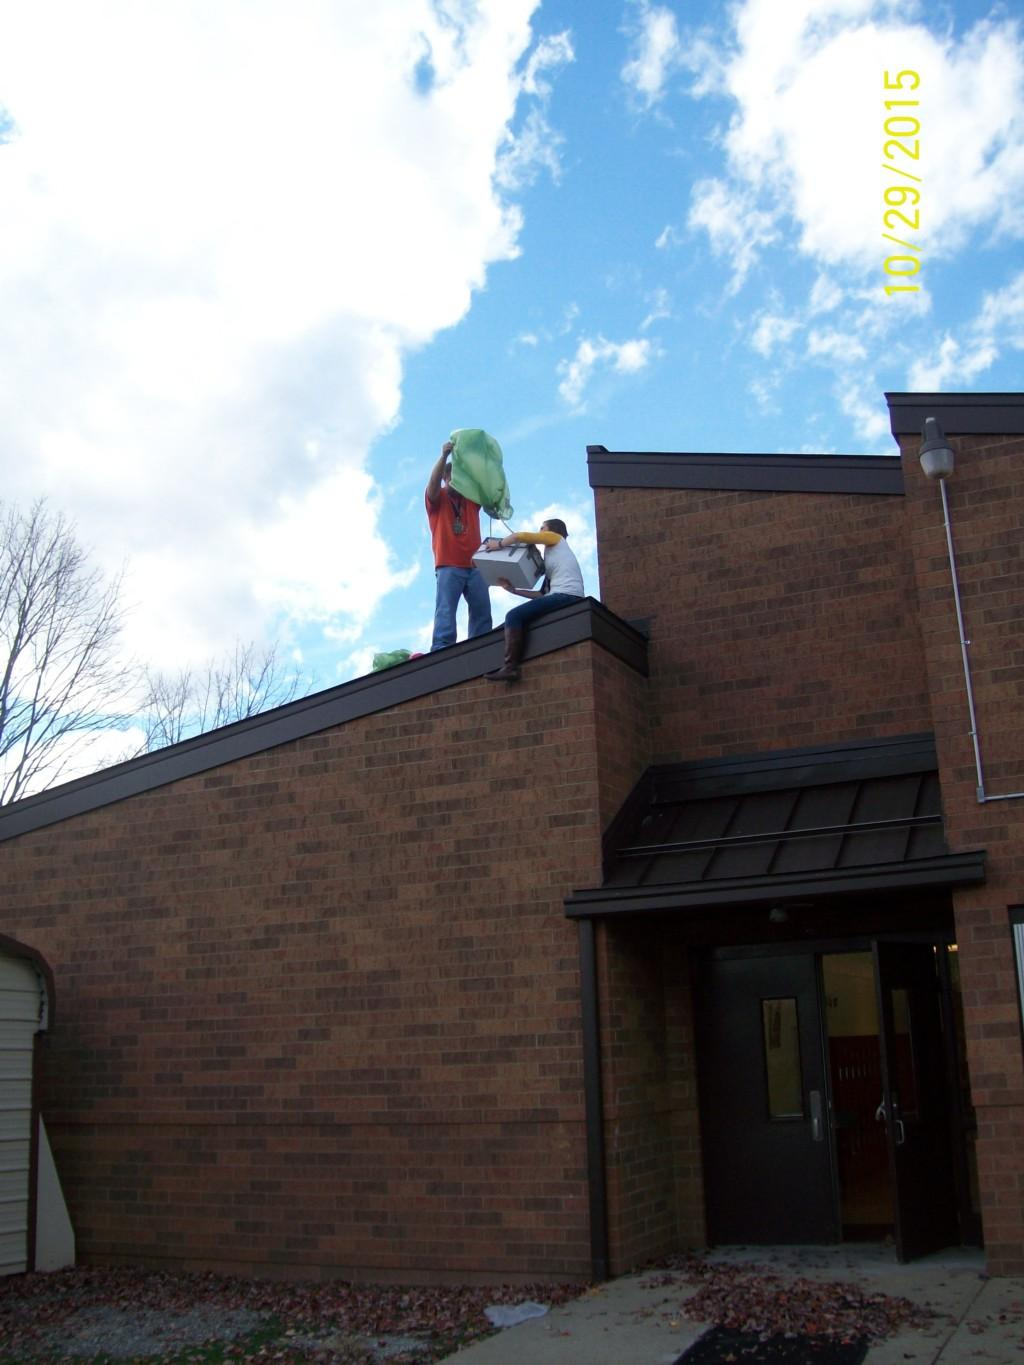 Mr. Kelley and Ms. Mason on the roof preparing for the pumpkin drop